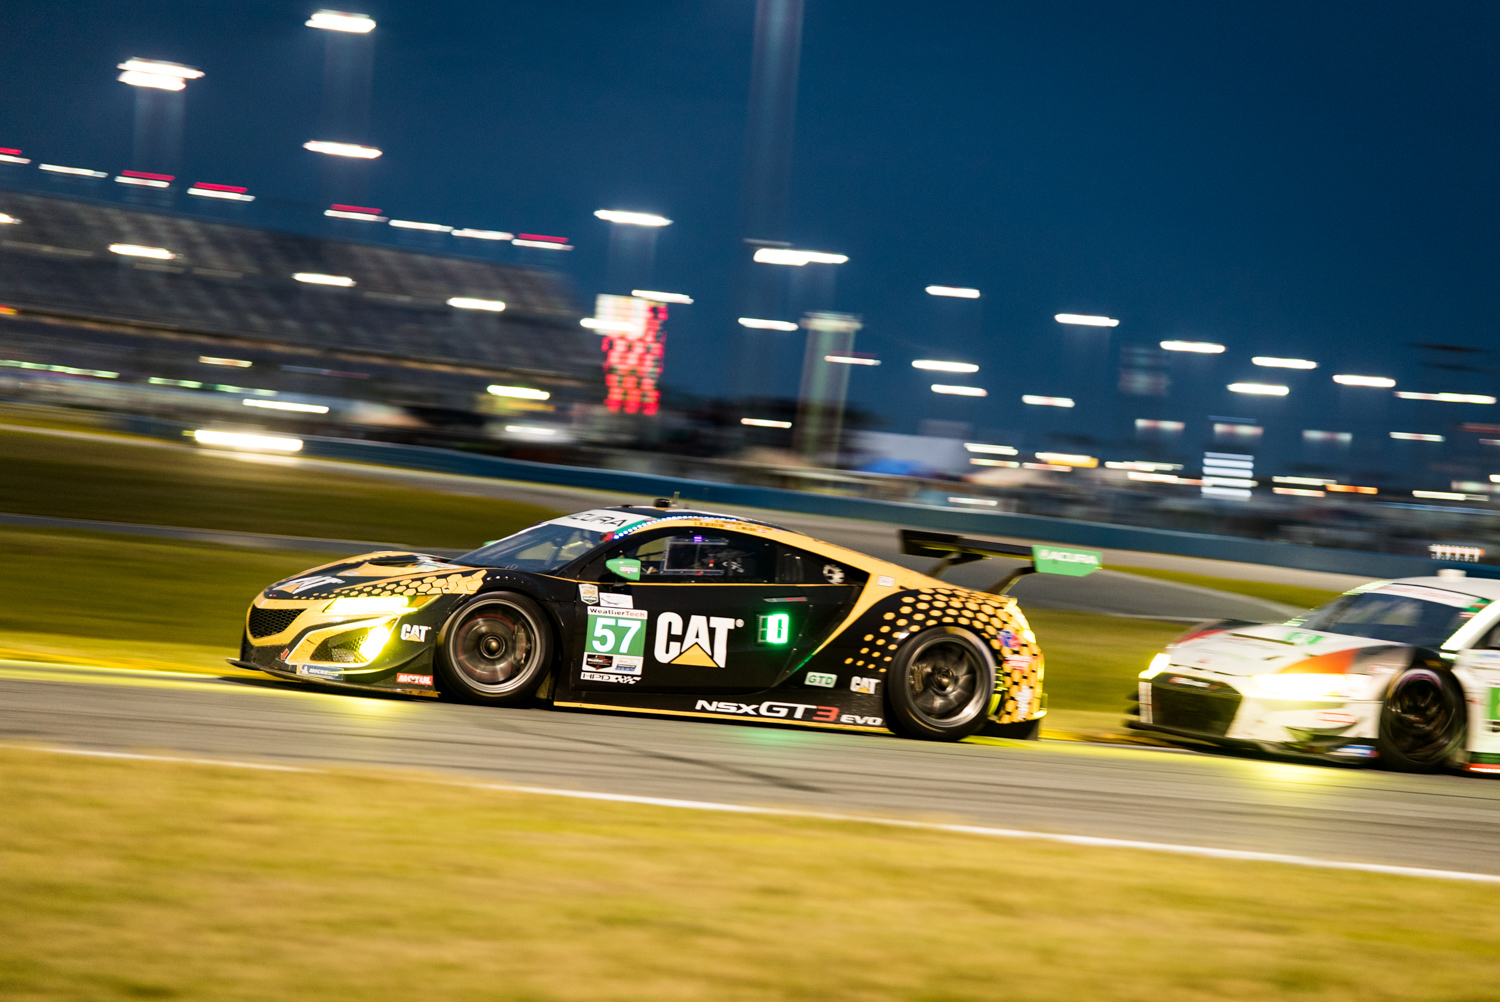 The all-female team of drivers piloting this Acura NSX GT3 were a force to be reckoned with in the GT Daytona class.